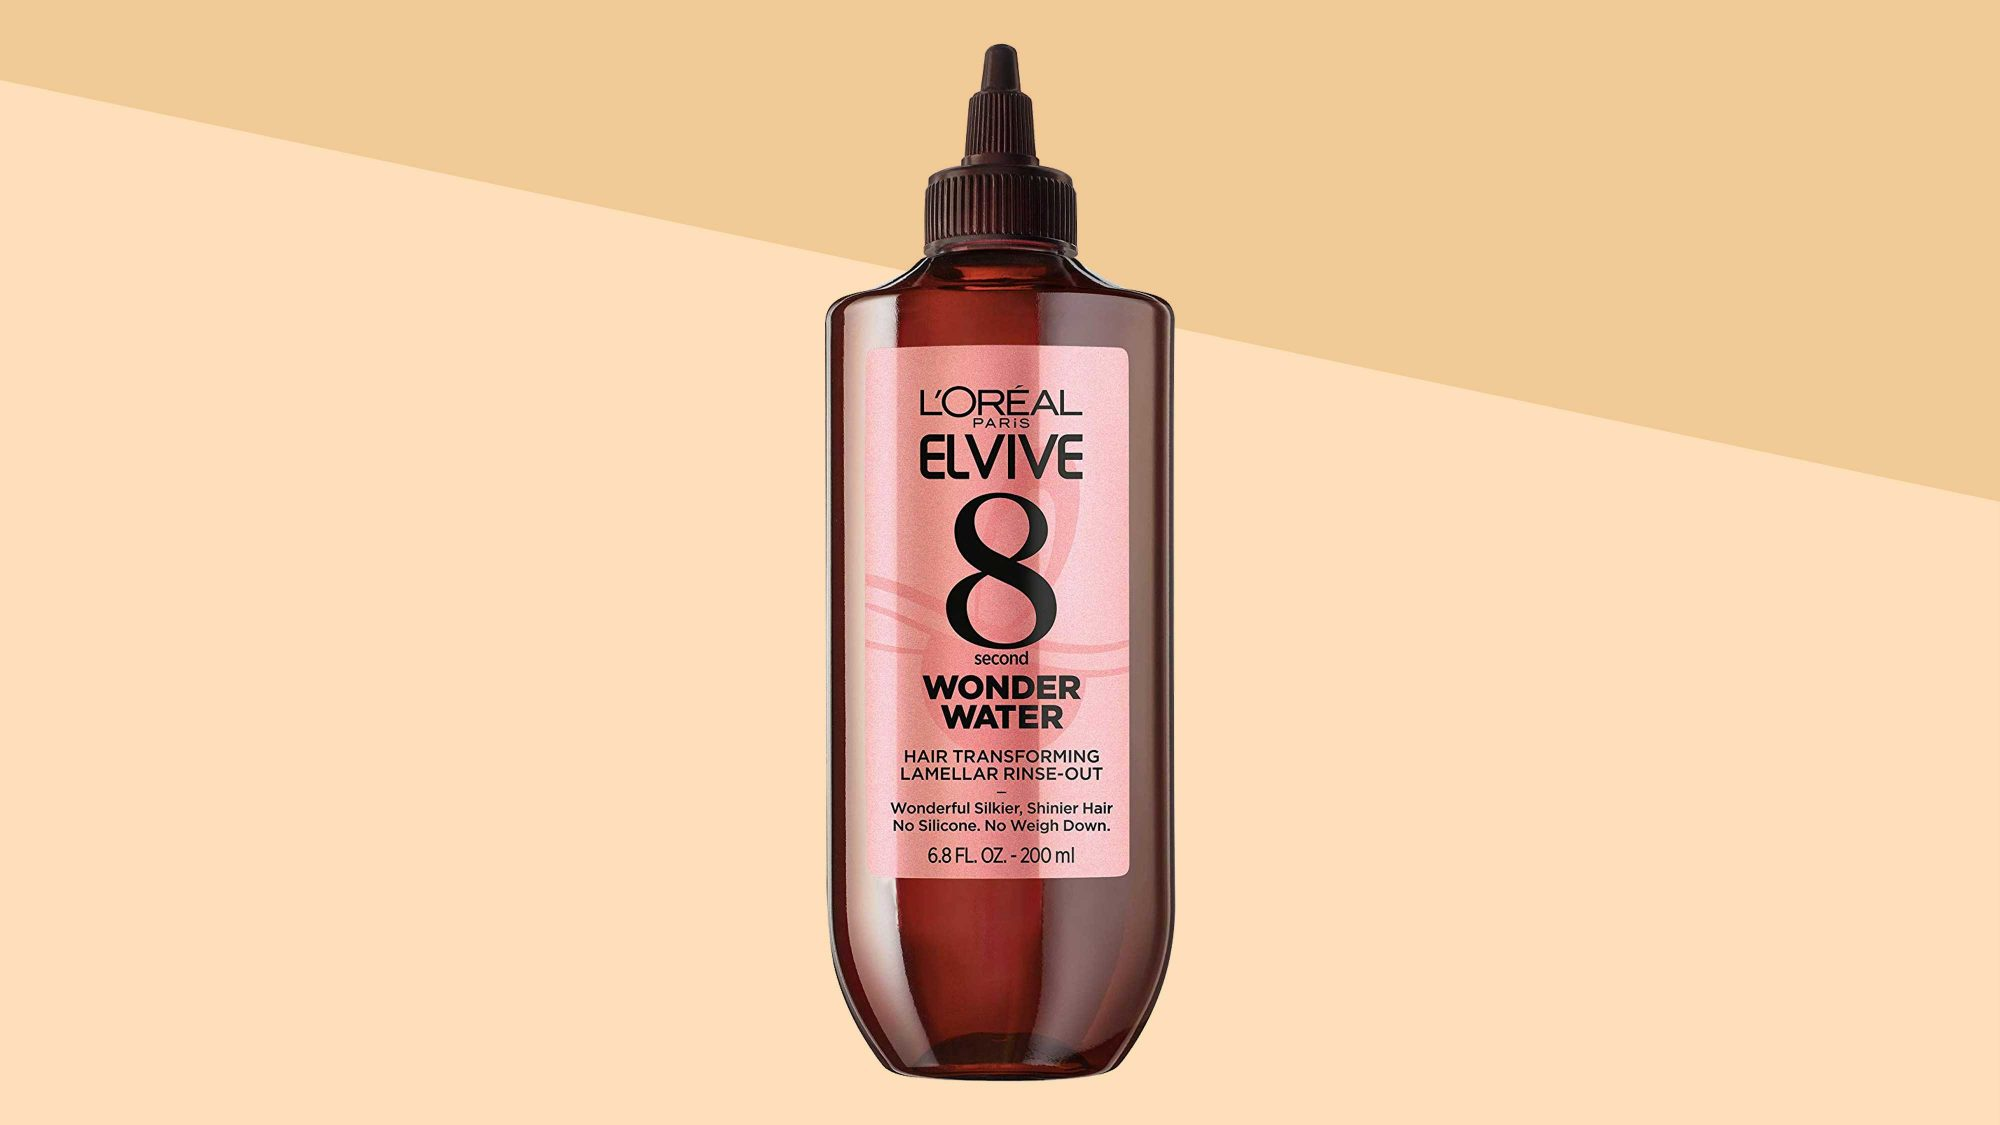 L'Oreal Paris Elvive 8 Second Wonder Water Lamellar Tout